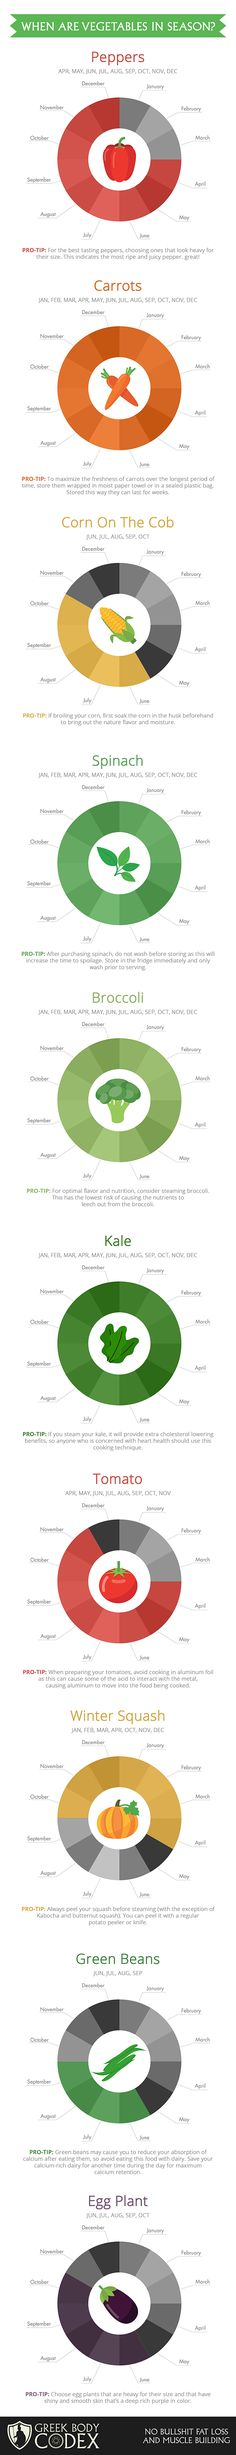 Get hooked on in-season produce with this ingenious chart   HellaWella